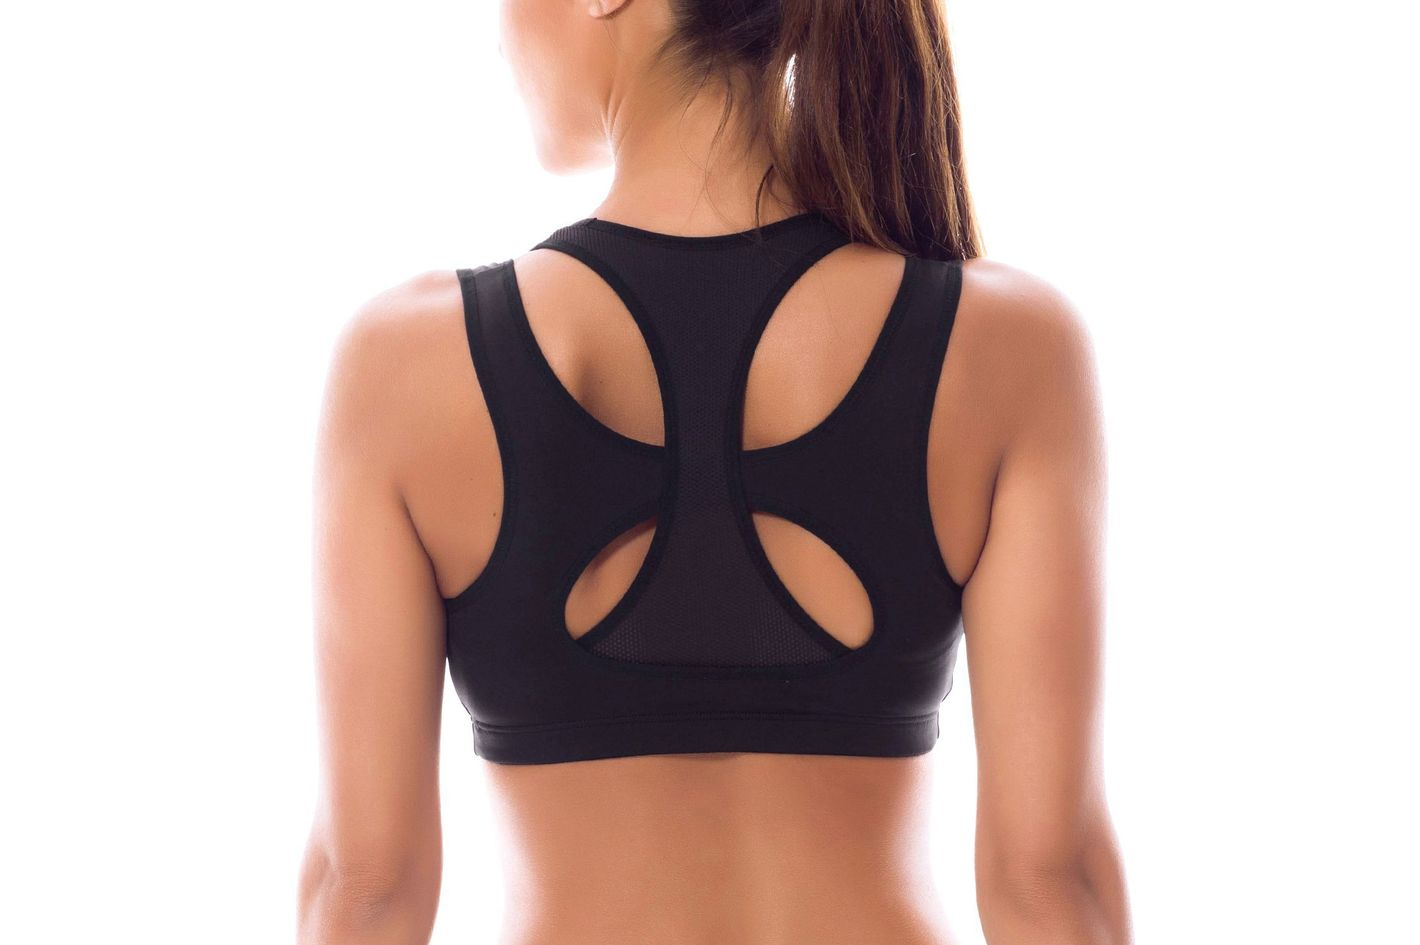 1a96e3f315 SYROKAN Women s High Impact Support Wirefree Workout Racerback Sports Bra  Top